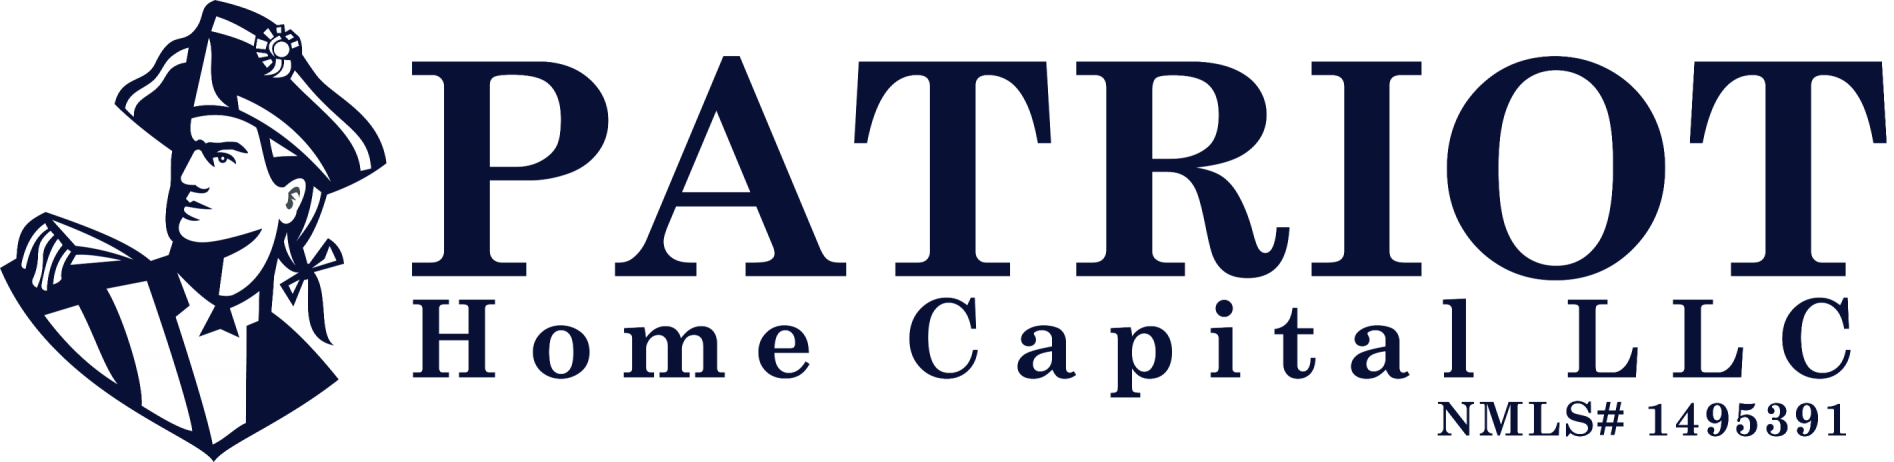 Patriot Home Capital